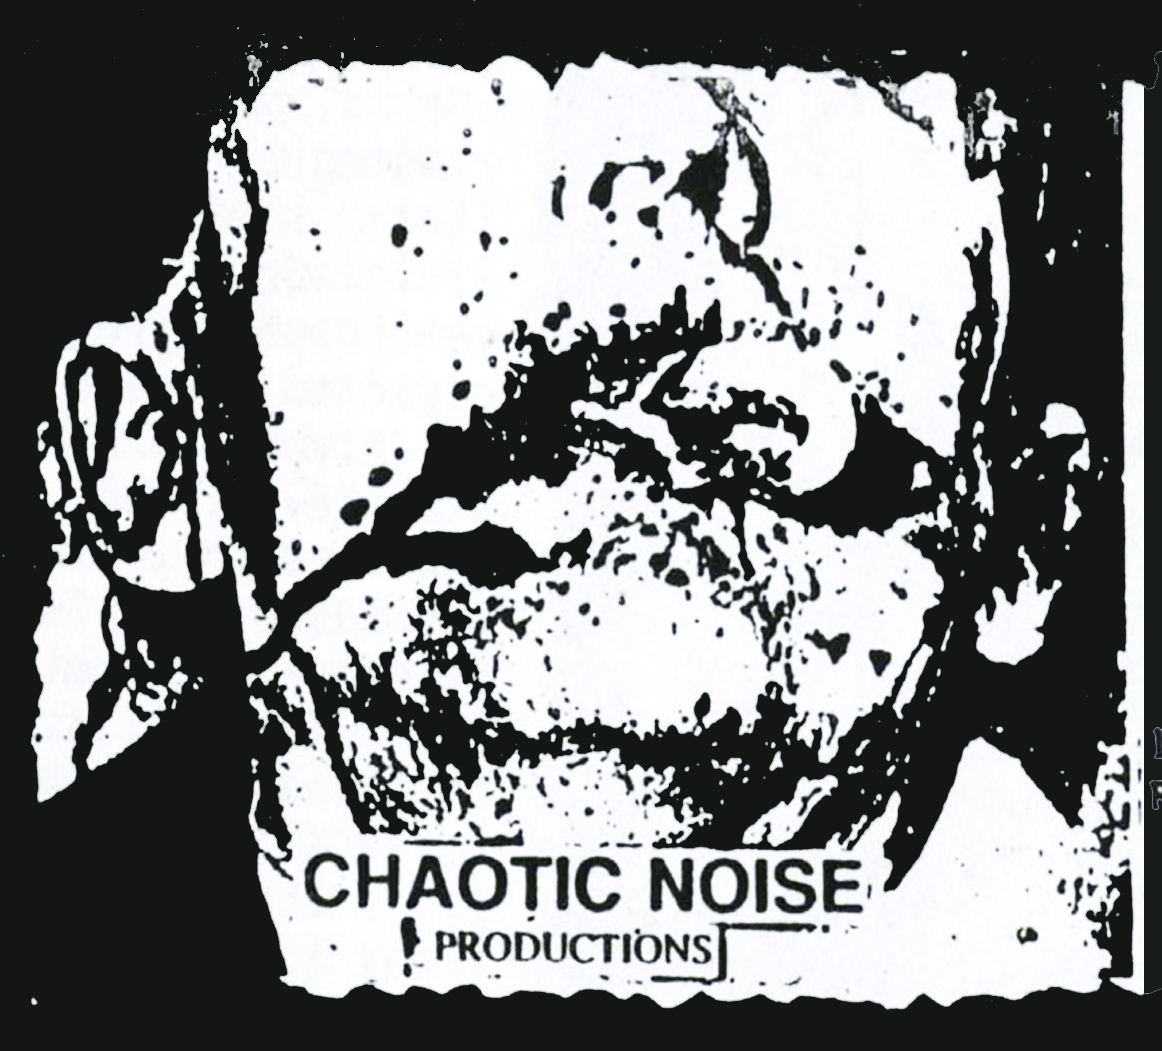 CHAOTIC NOISE PRODUCTIONS a.k.a. C.N.P. Records